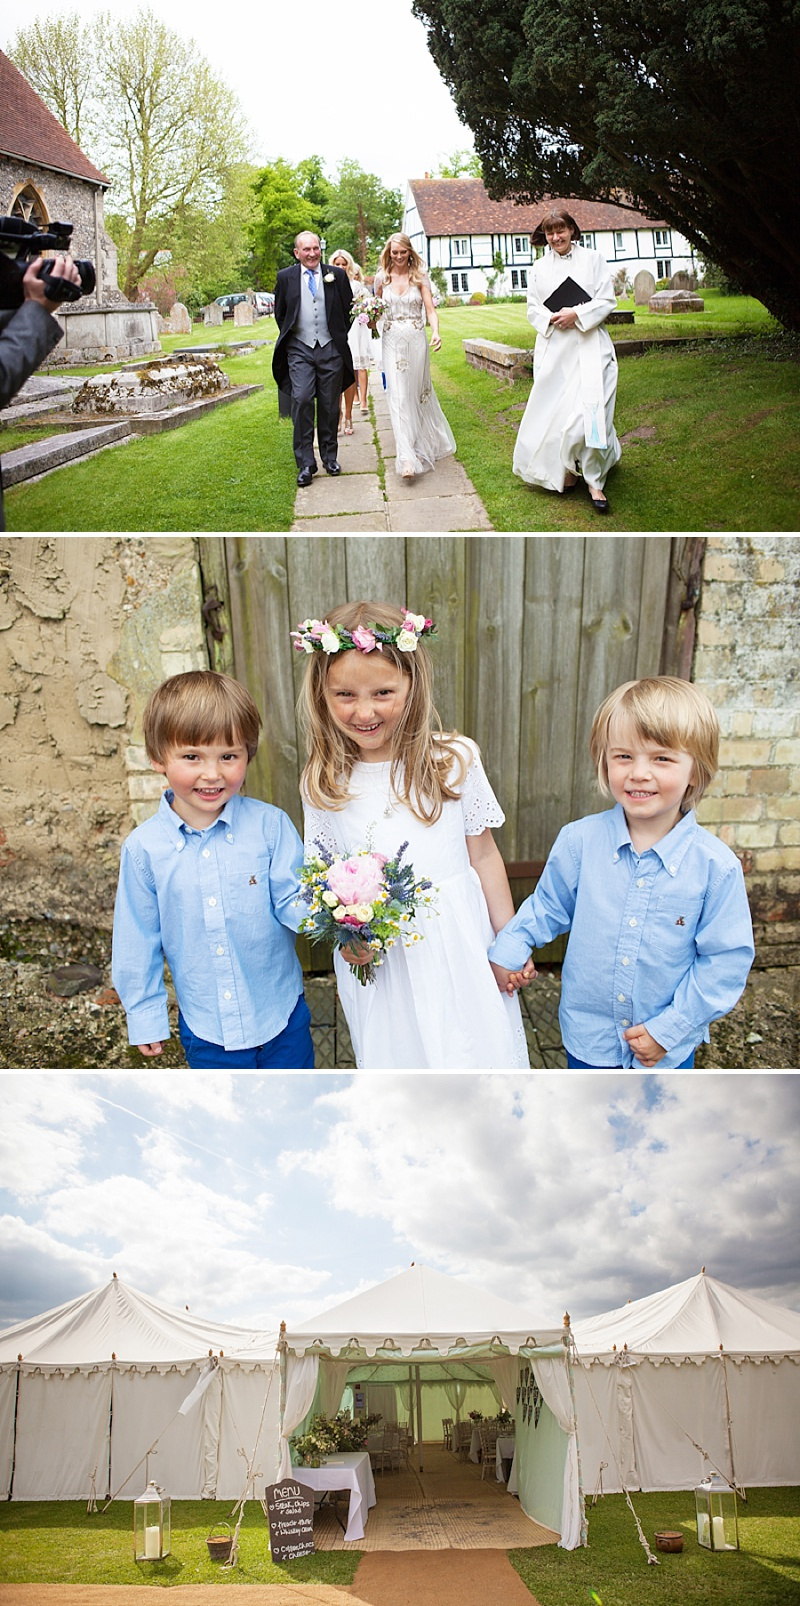 Summer Garden Party Wedding In Hertfordshire, Bride In Jenny Packham Eden Gown, Images by Annamarie Stepney_0007